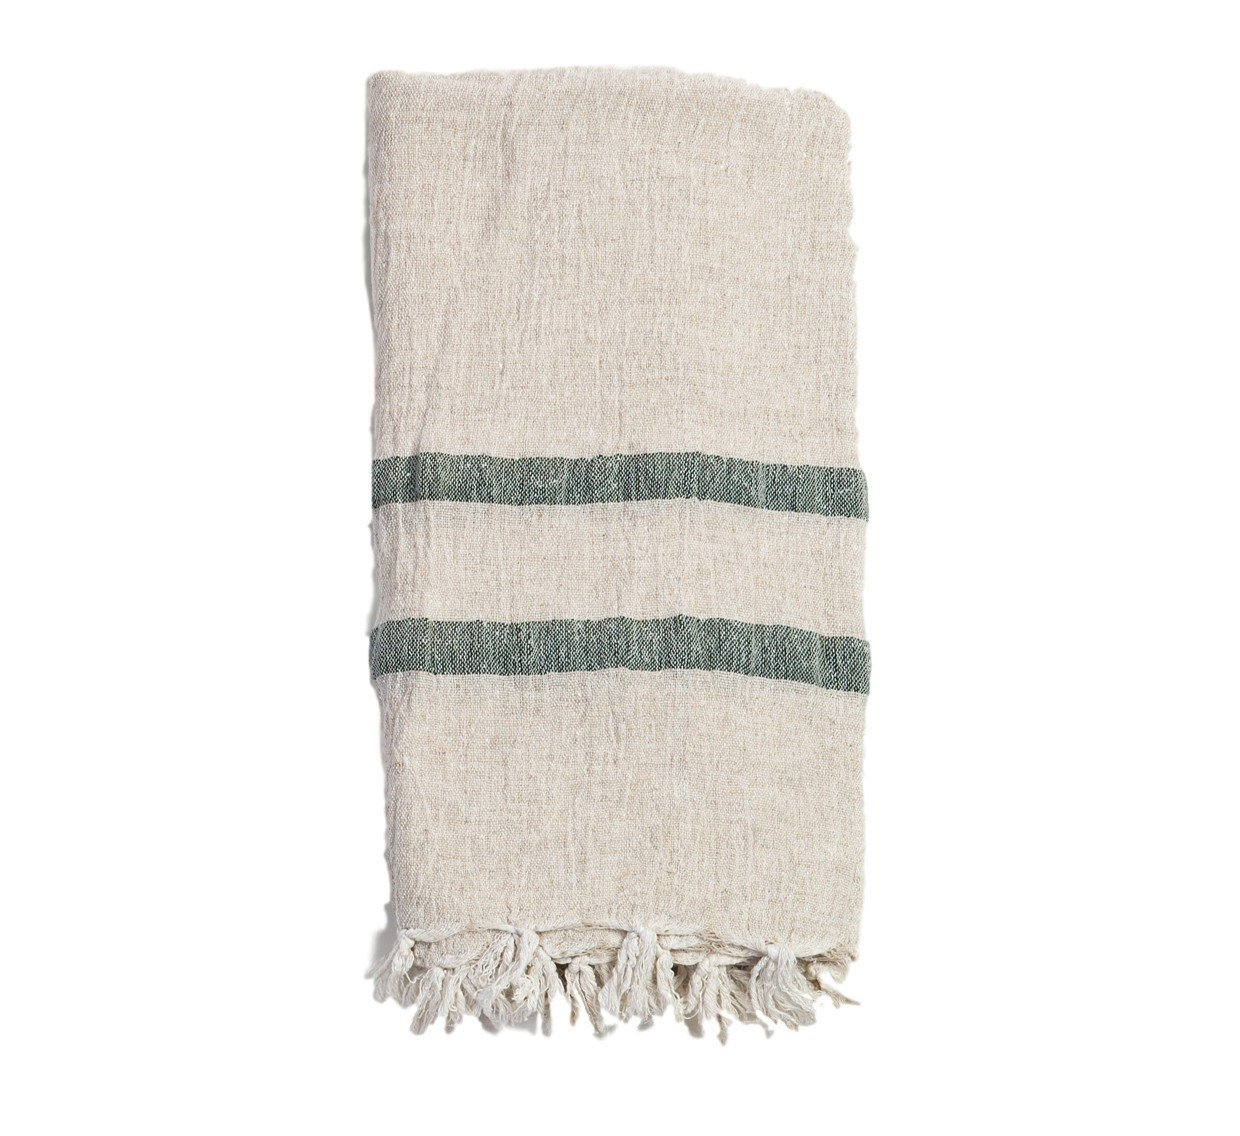 Linen Towel Blanket